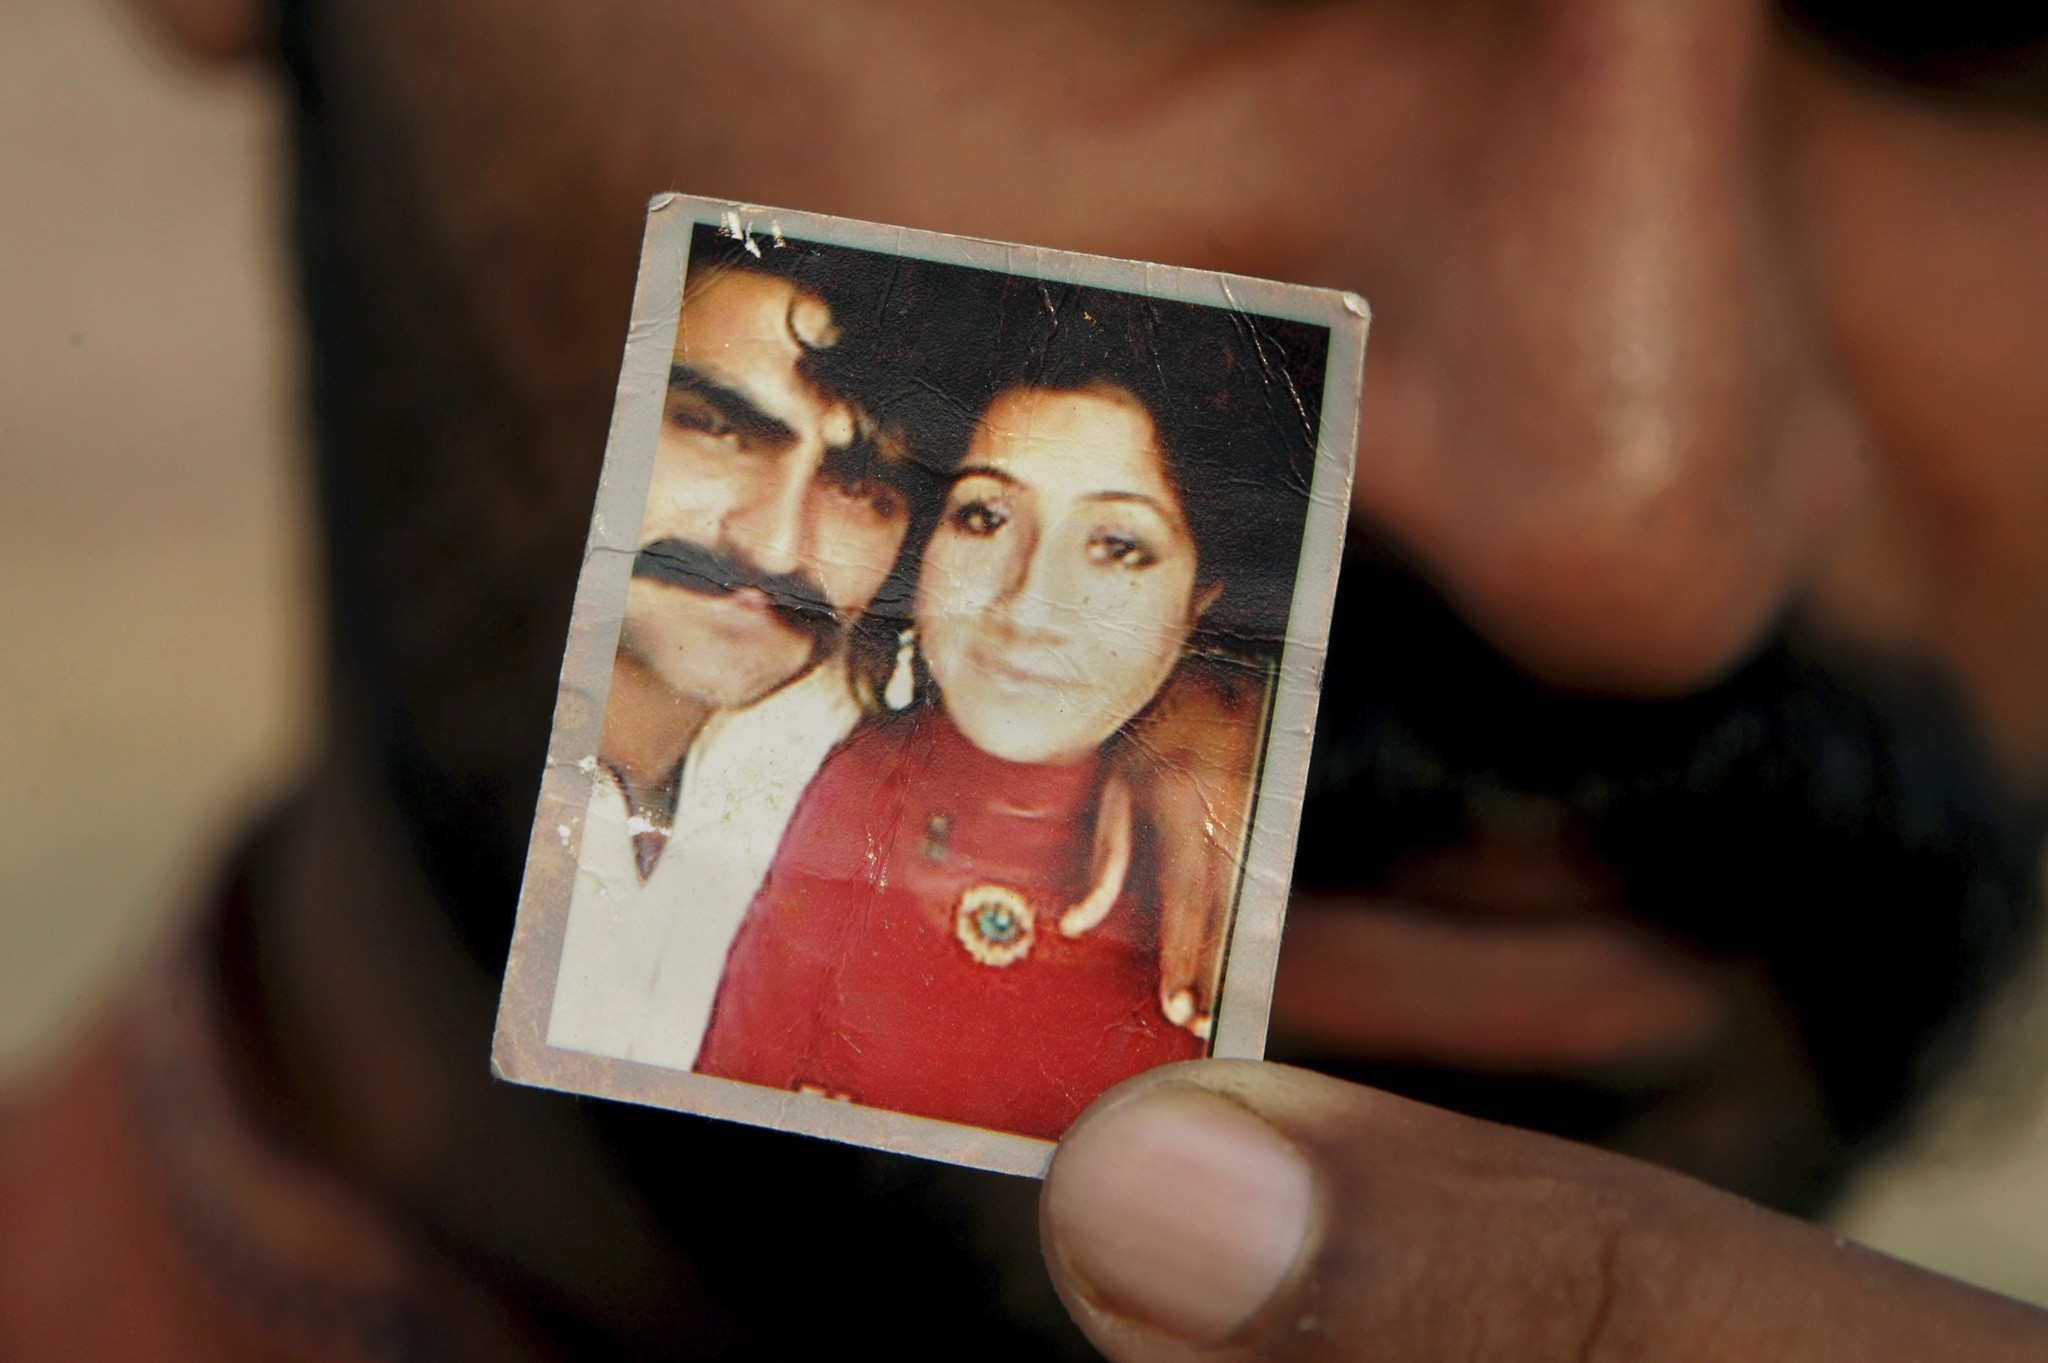 In this June 18, 2016 photo, Mohammed Tofeeq shows a picture with his wife Muqadas Tofeeq, who local police say was killed by her mother, in Butrawala village on the outskirts of Gujranwala, Pakistan. (AP Photo)